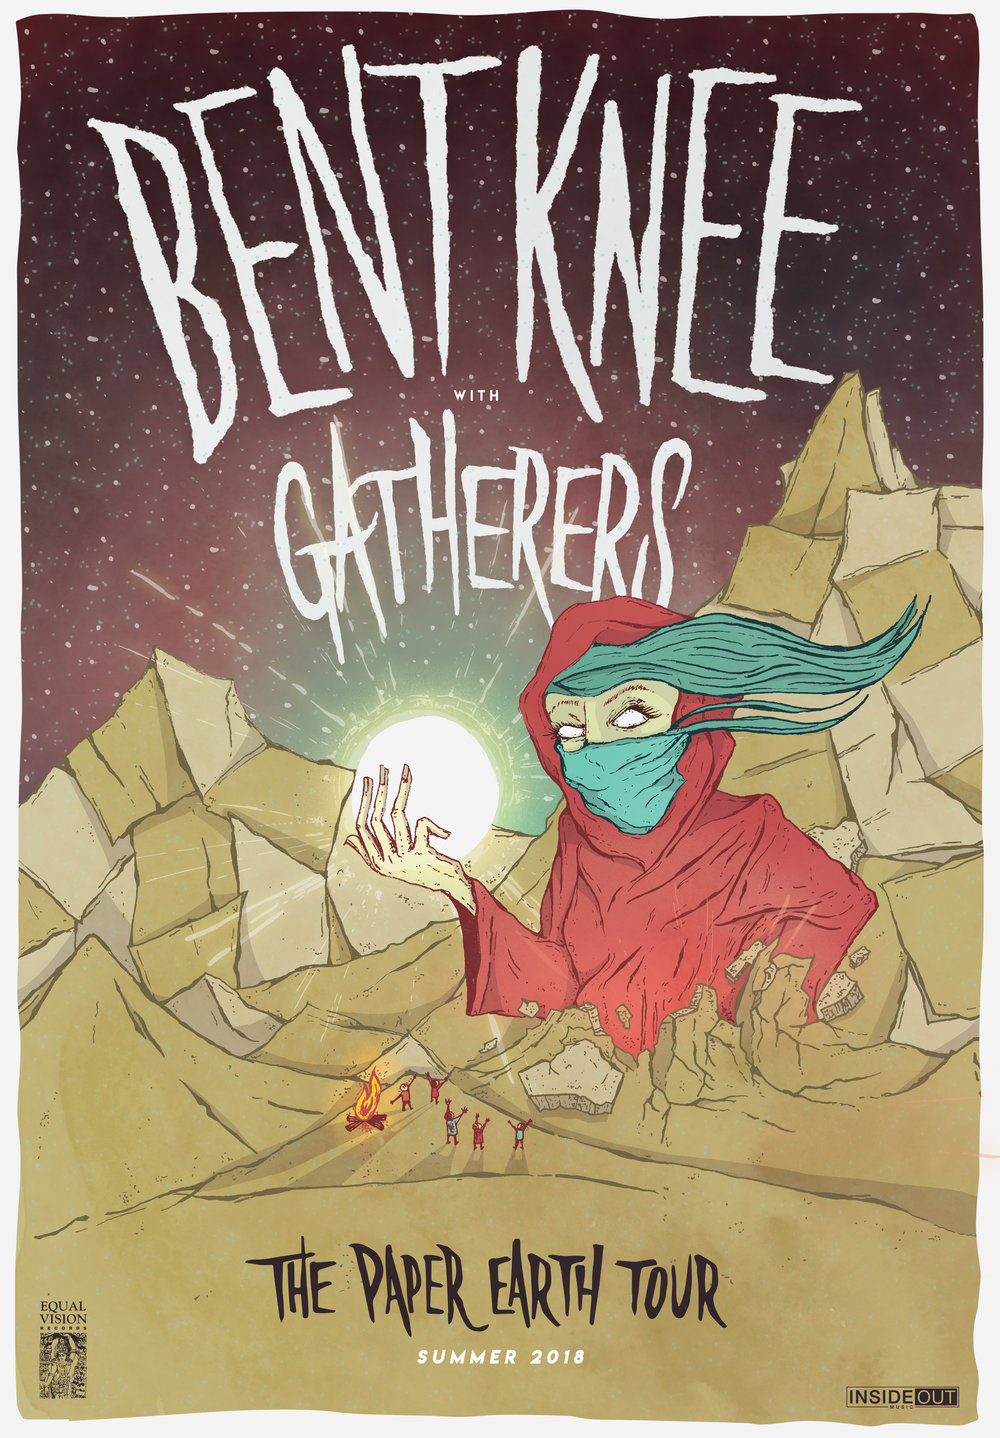 Bent Knee Paper Earth Tour Poster NO ALBUM ANNOUNCEMENT.jpeg